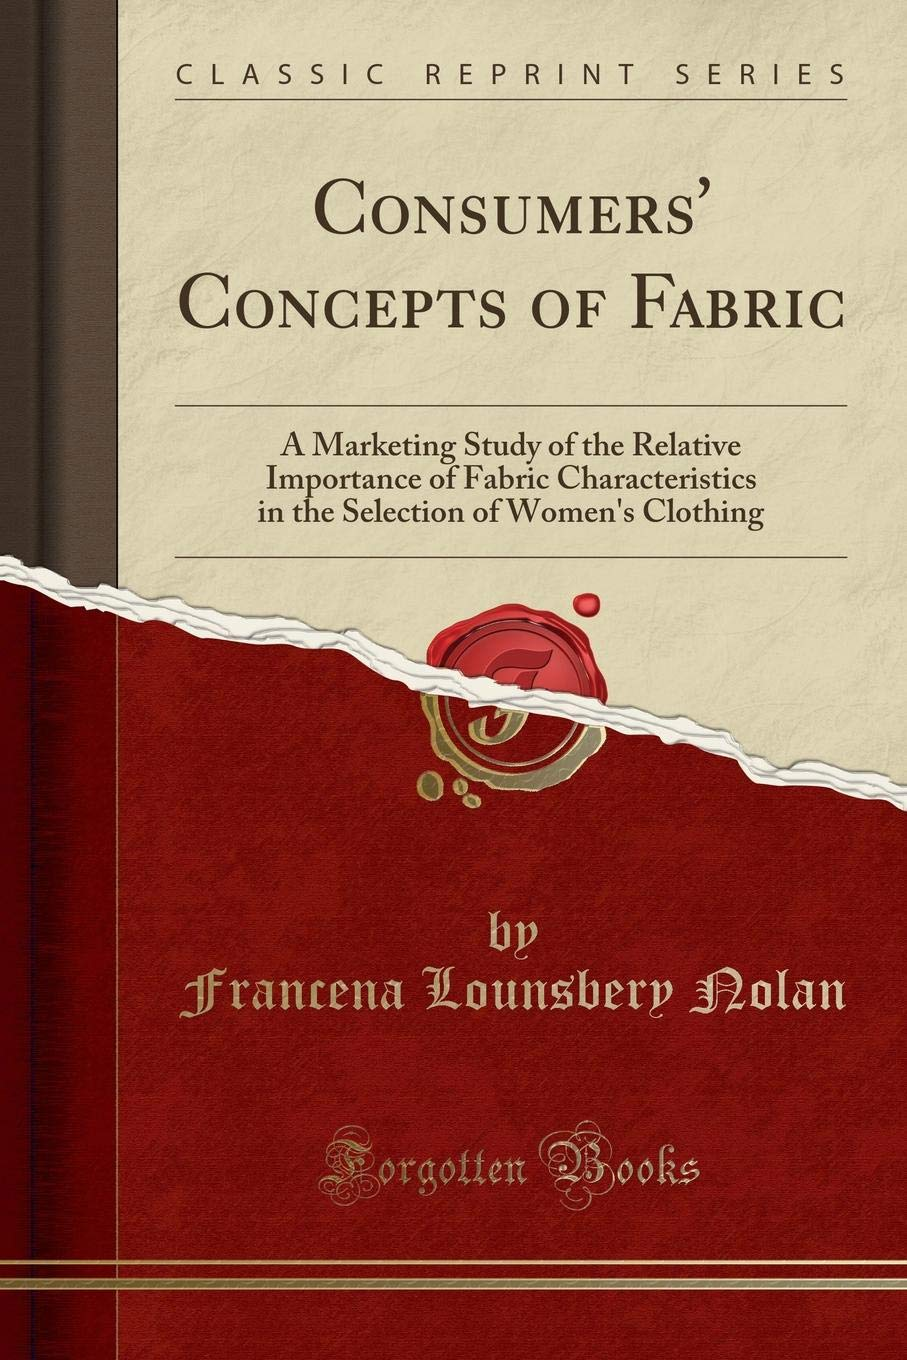 Download Consumers' Concepts of Fabric: A Marketing Study of the Relative Importance of Fabric Characteristics in the Selection of Women's Clothing (Classic Reprint) pdf epub